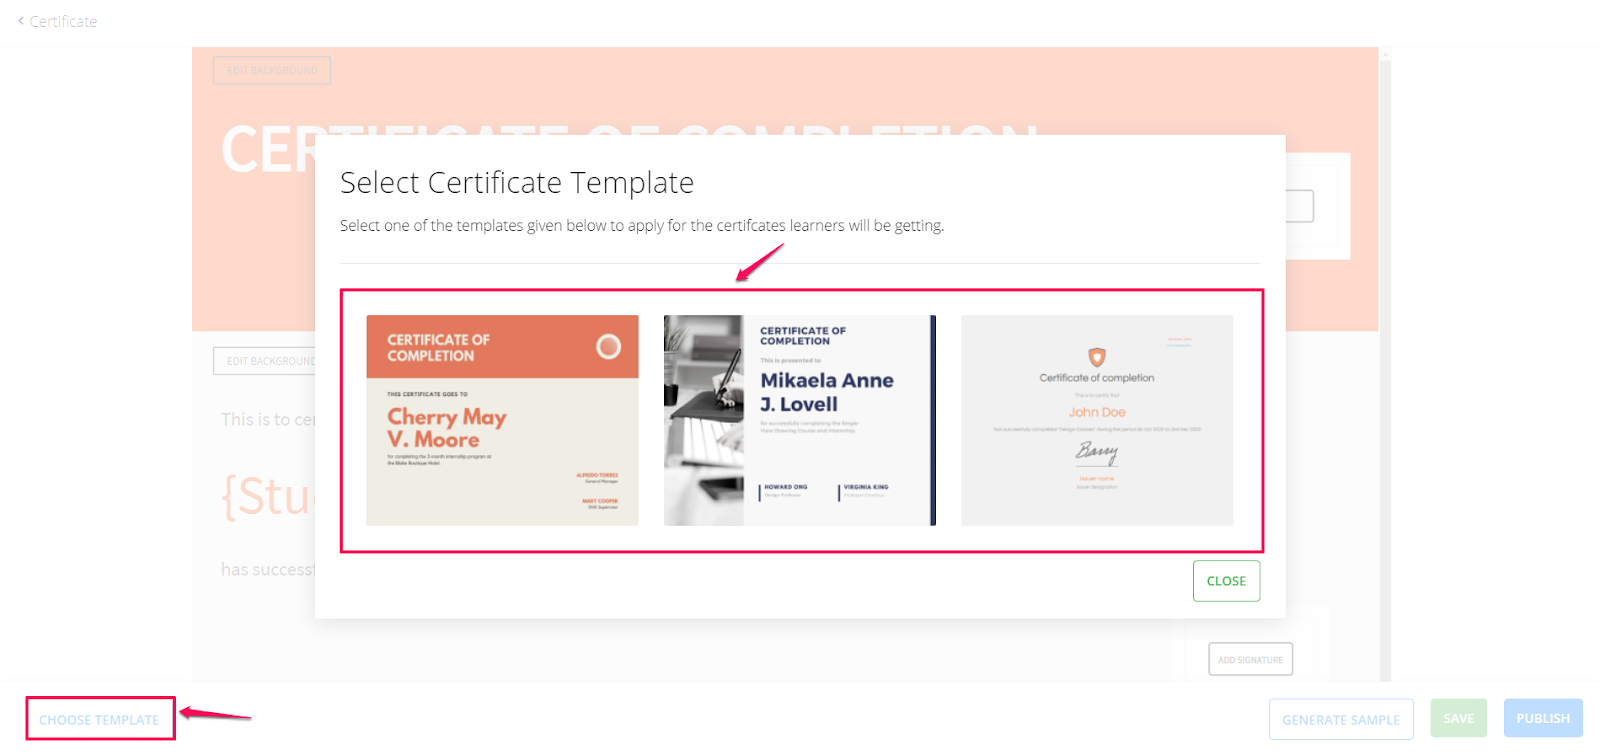 Select certtificate template